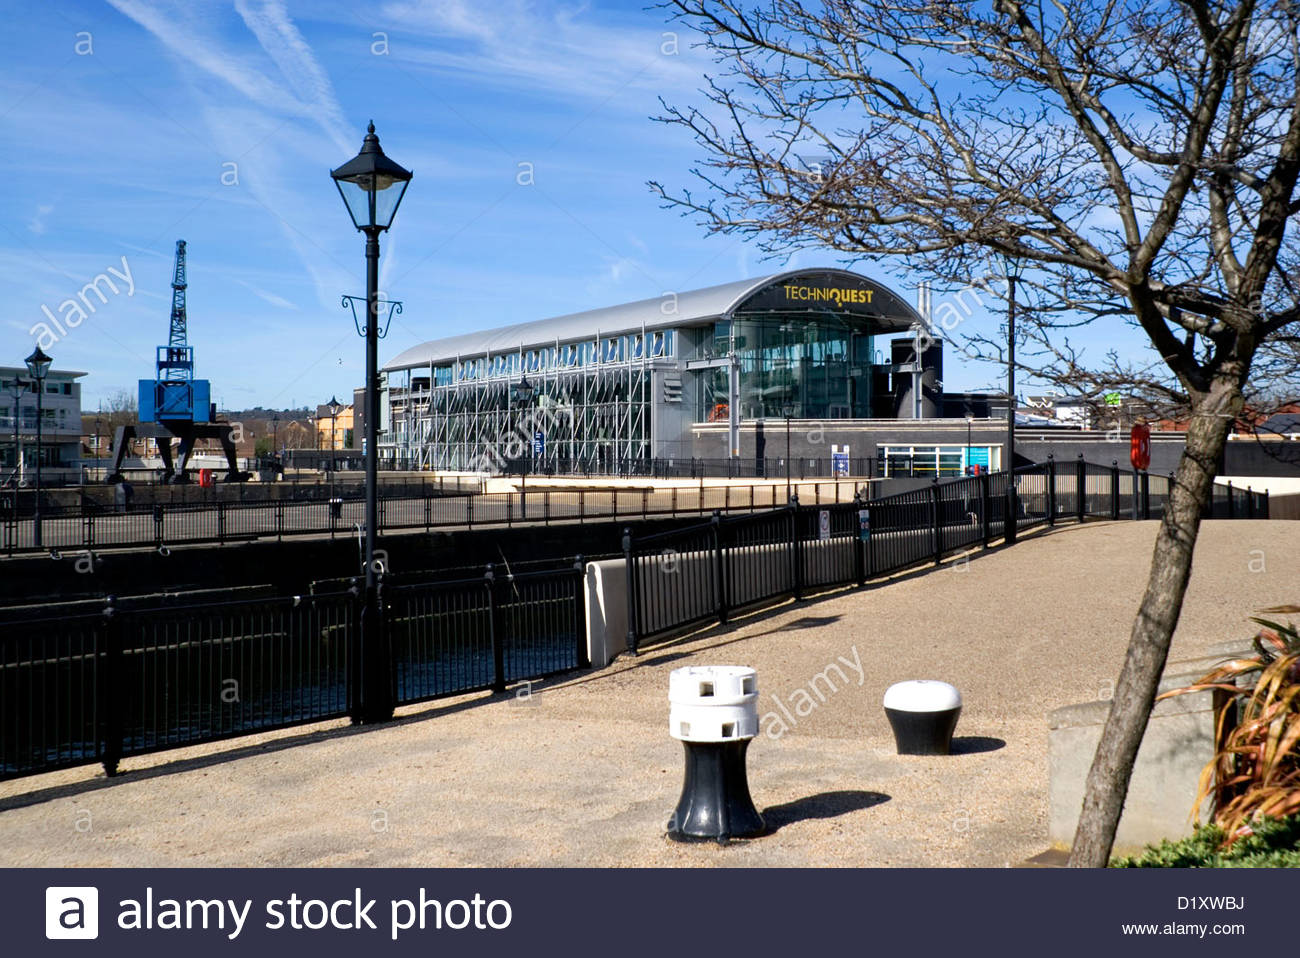 Techniquest South Wales, techniquest cardiff bay south wales uk Stock Photo, Royalty Free ...